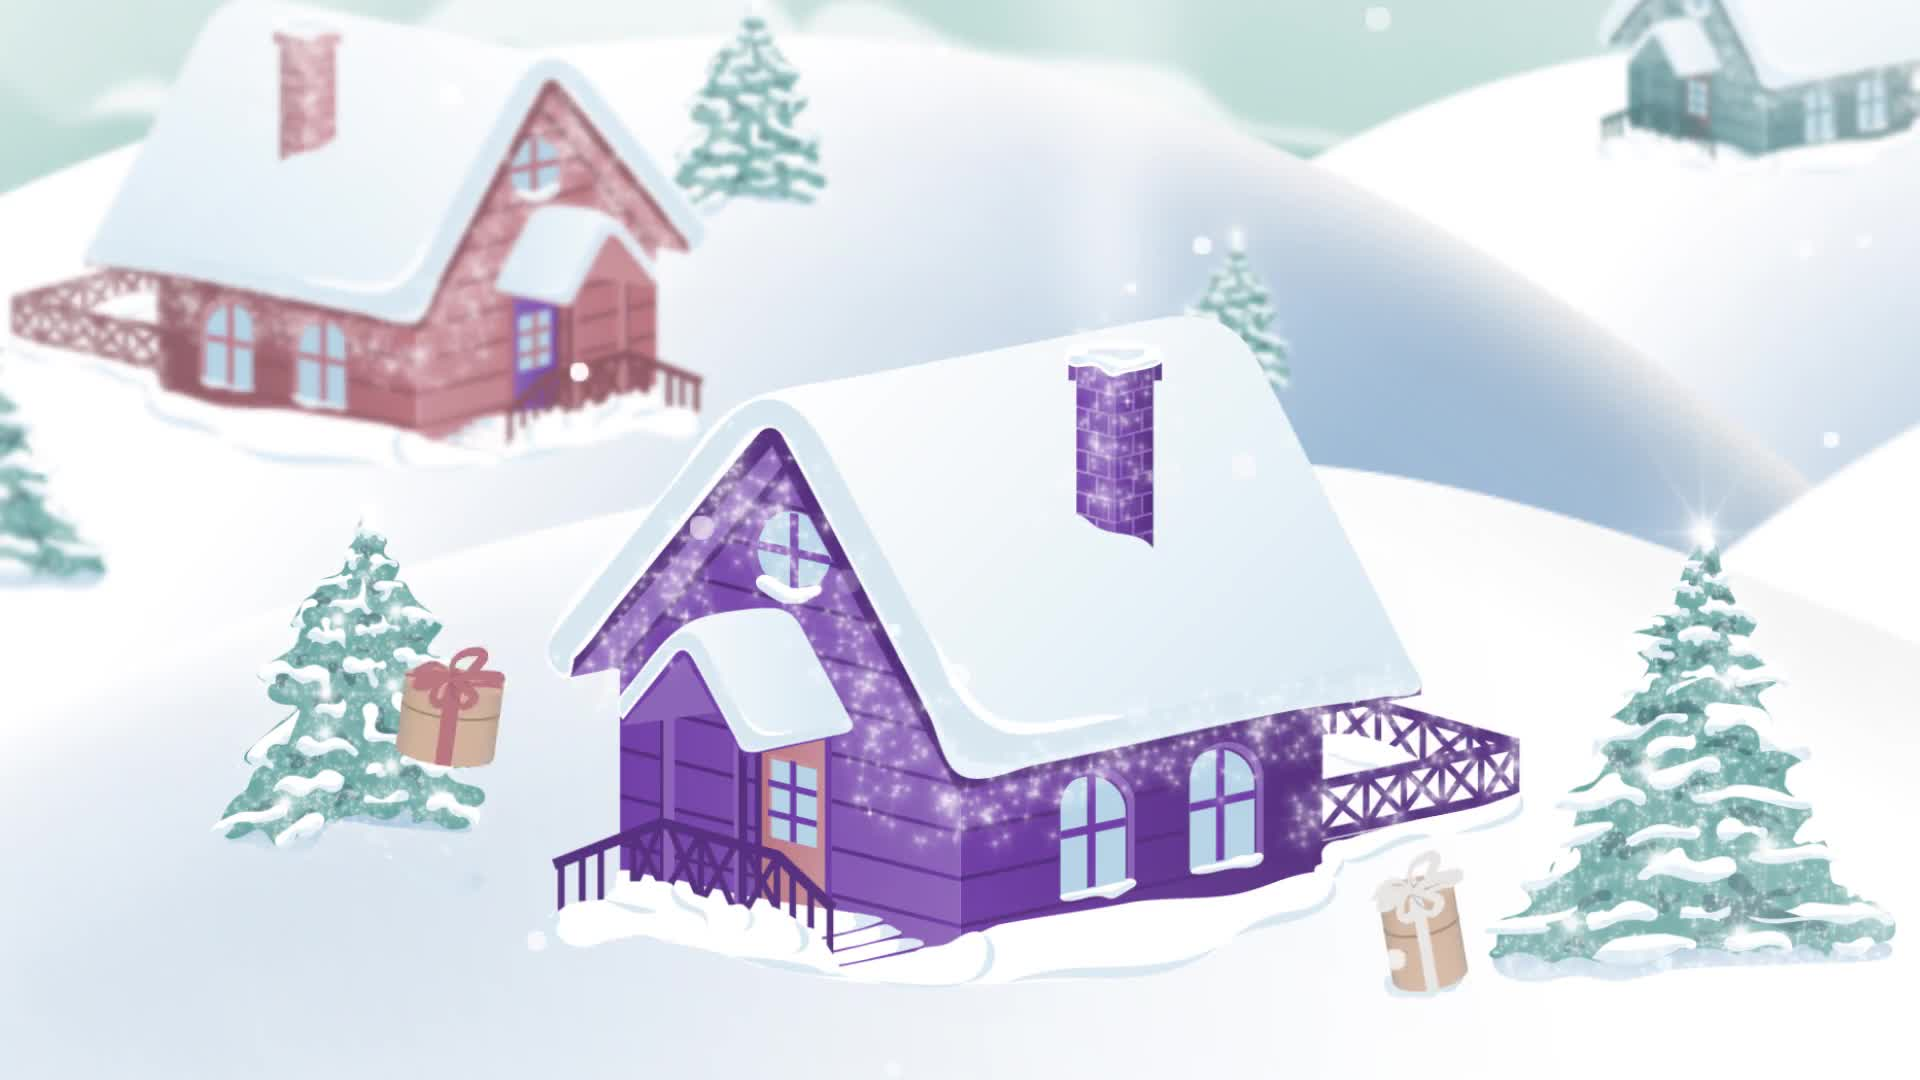 Christmas Village Landscape - Download Videohive 20898385